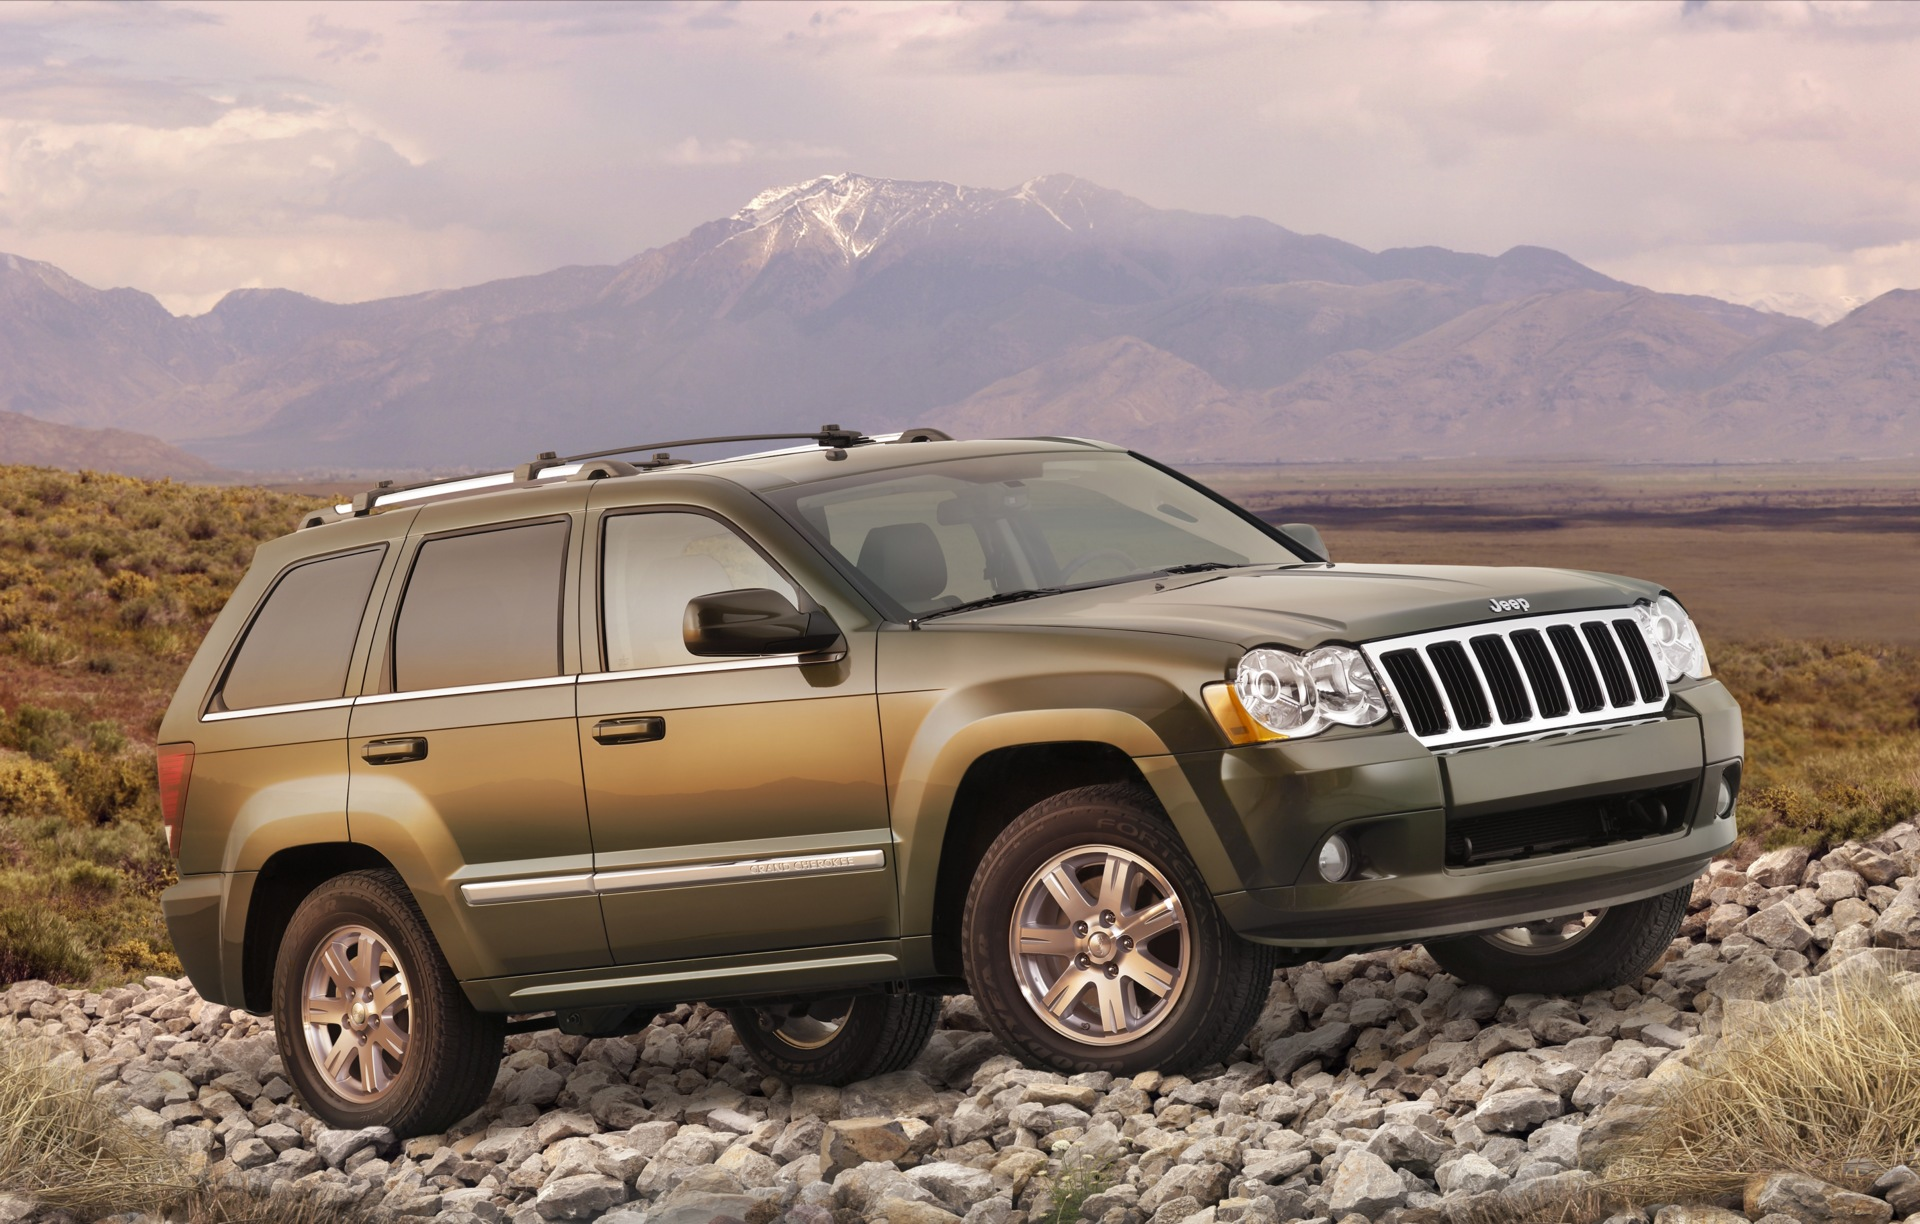 jeep grand cherokee picture - photo #40